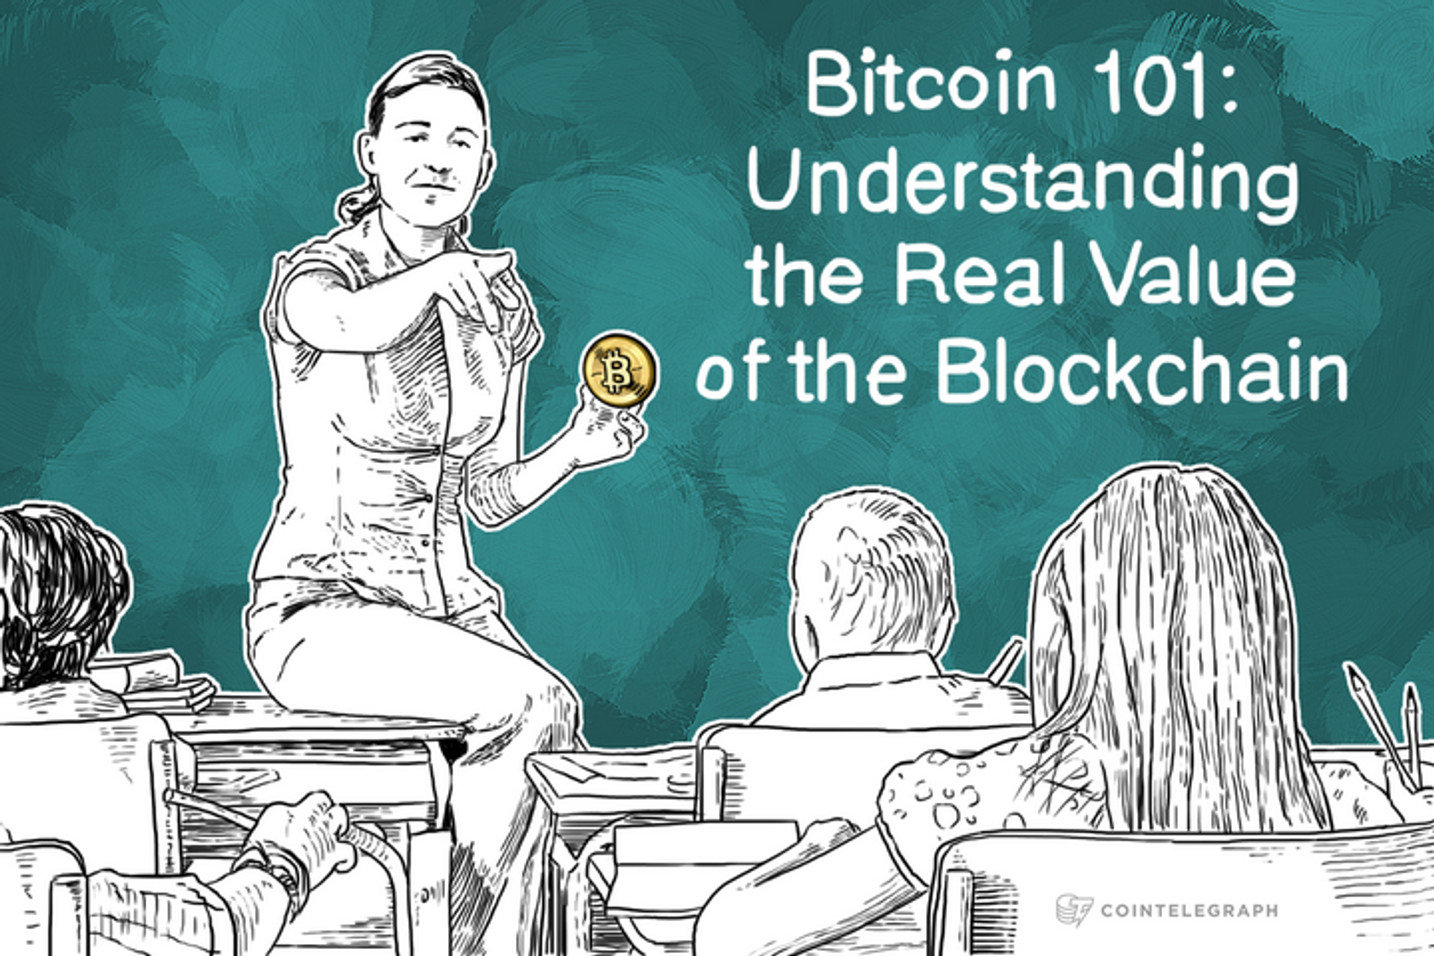 Bitcoin 101: Understanding the Real Value of the Blockchain